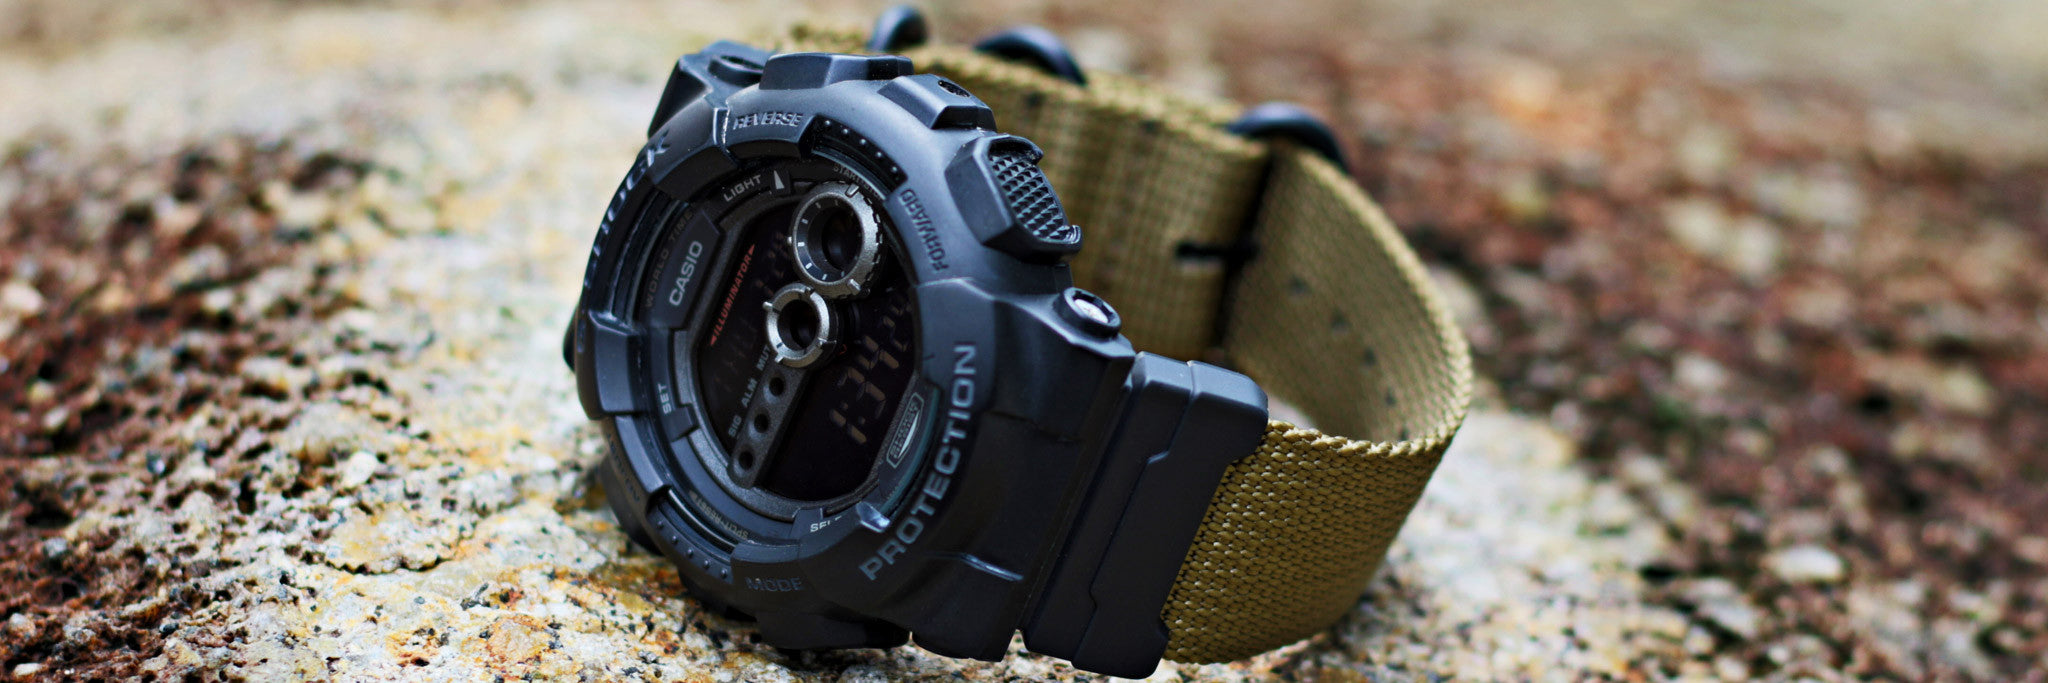 34606cd07a2 Militarise your G-Shock with our super heavy duty or shiny seat belt NATO  straps coupled with Casio s G-Shock NATO adapter